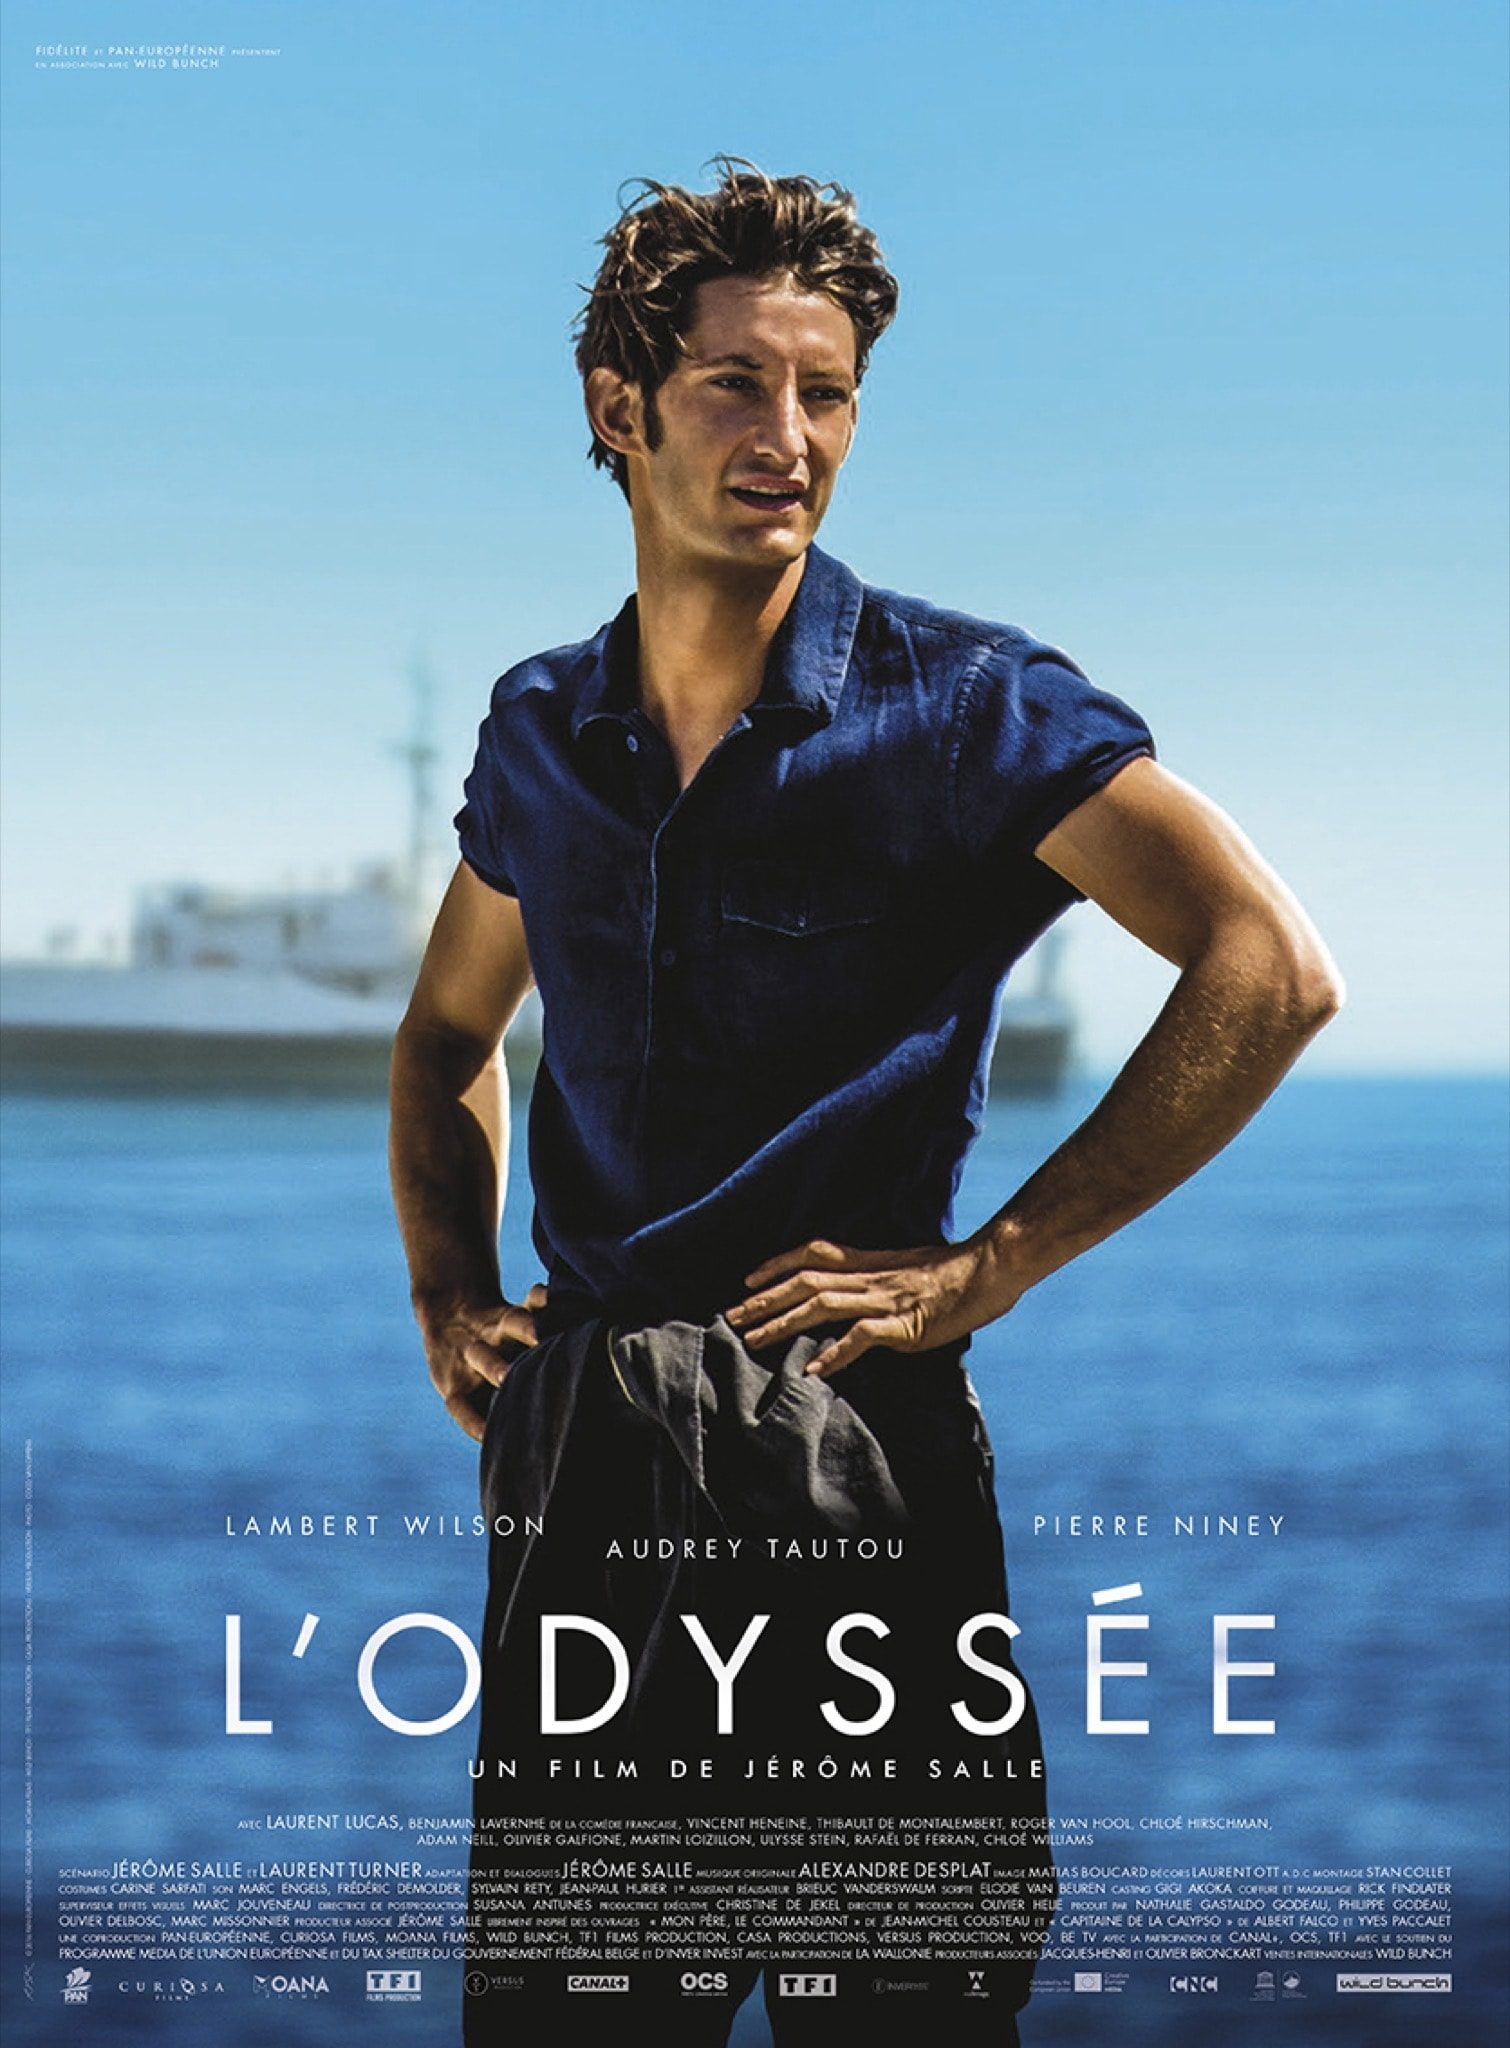 lodyssee-affiche-personnage-pierre-niney